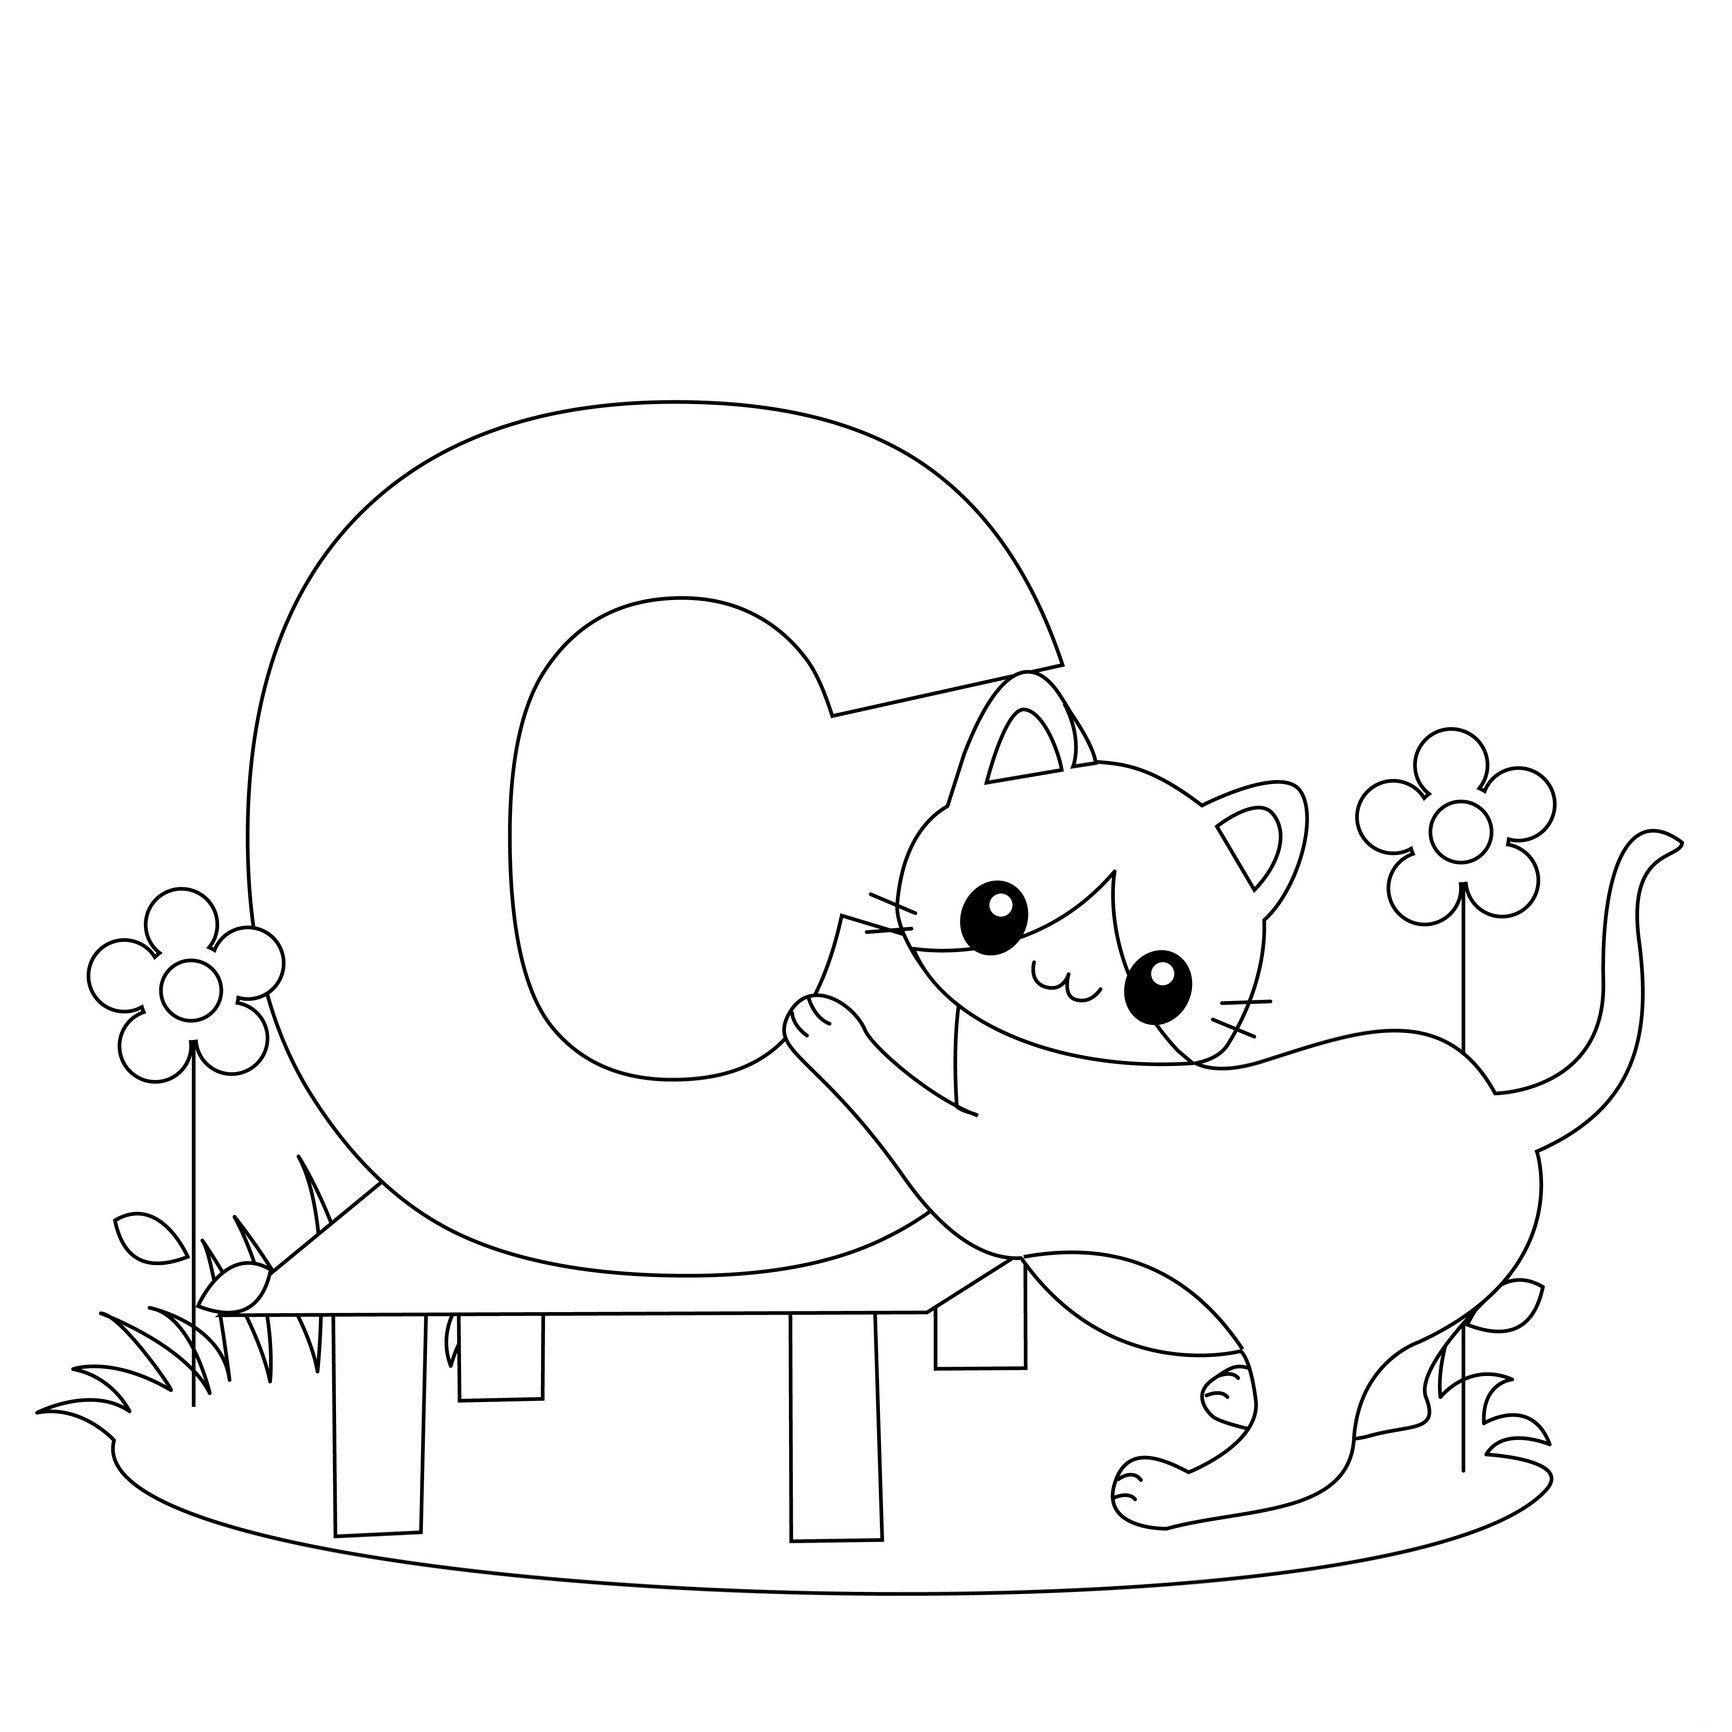 New Images Of Free Alphabet Coloring Worksheets Download | Coloring - Free Printable Alphabet Coloring Pages